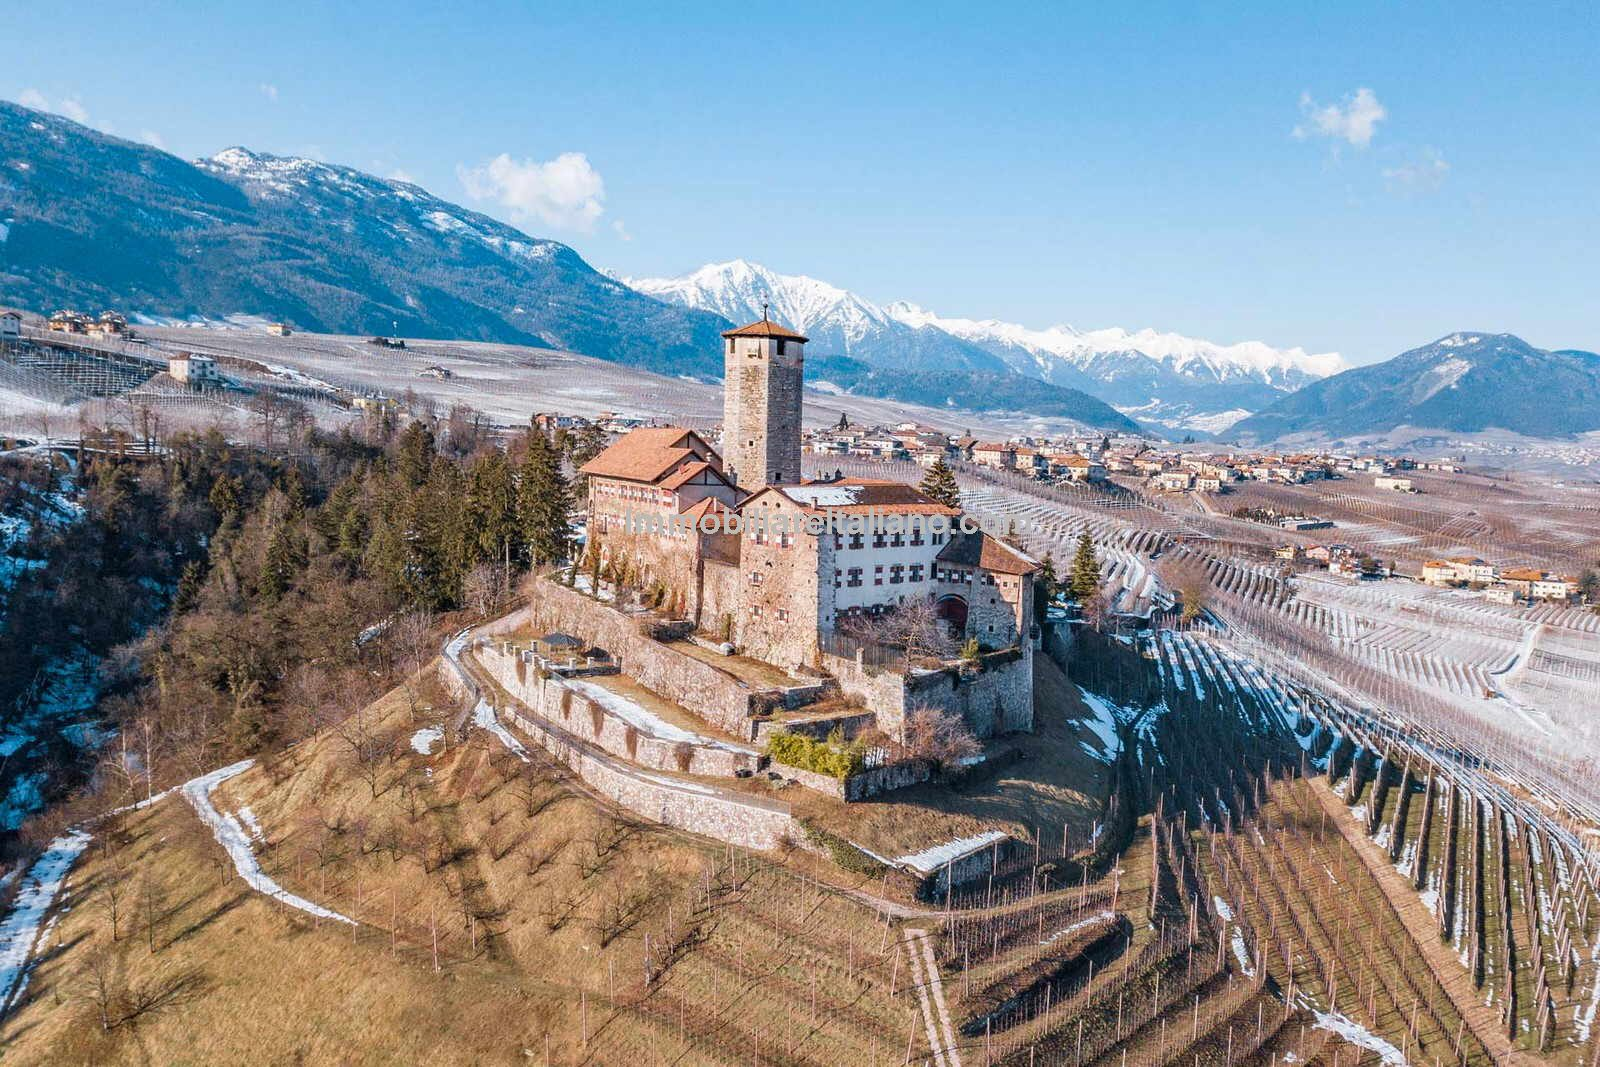 Medieval castle for sale